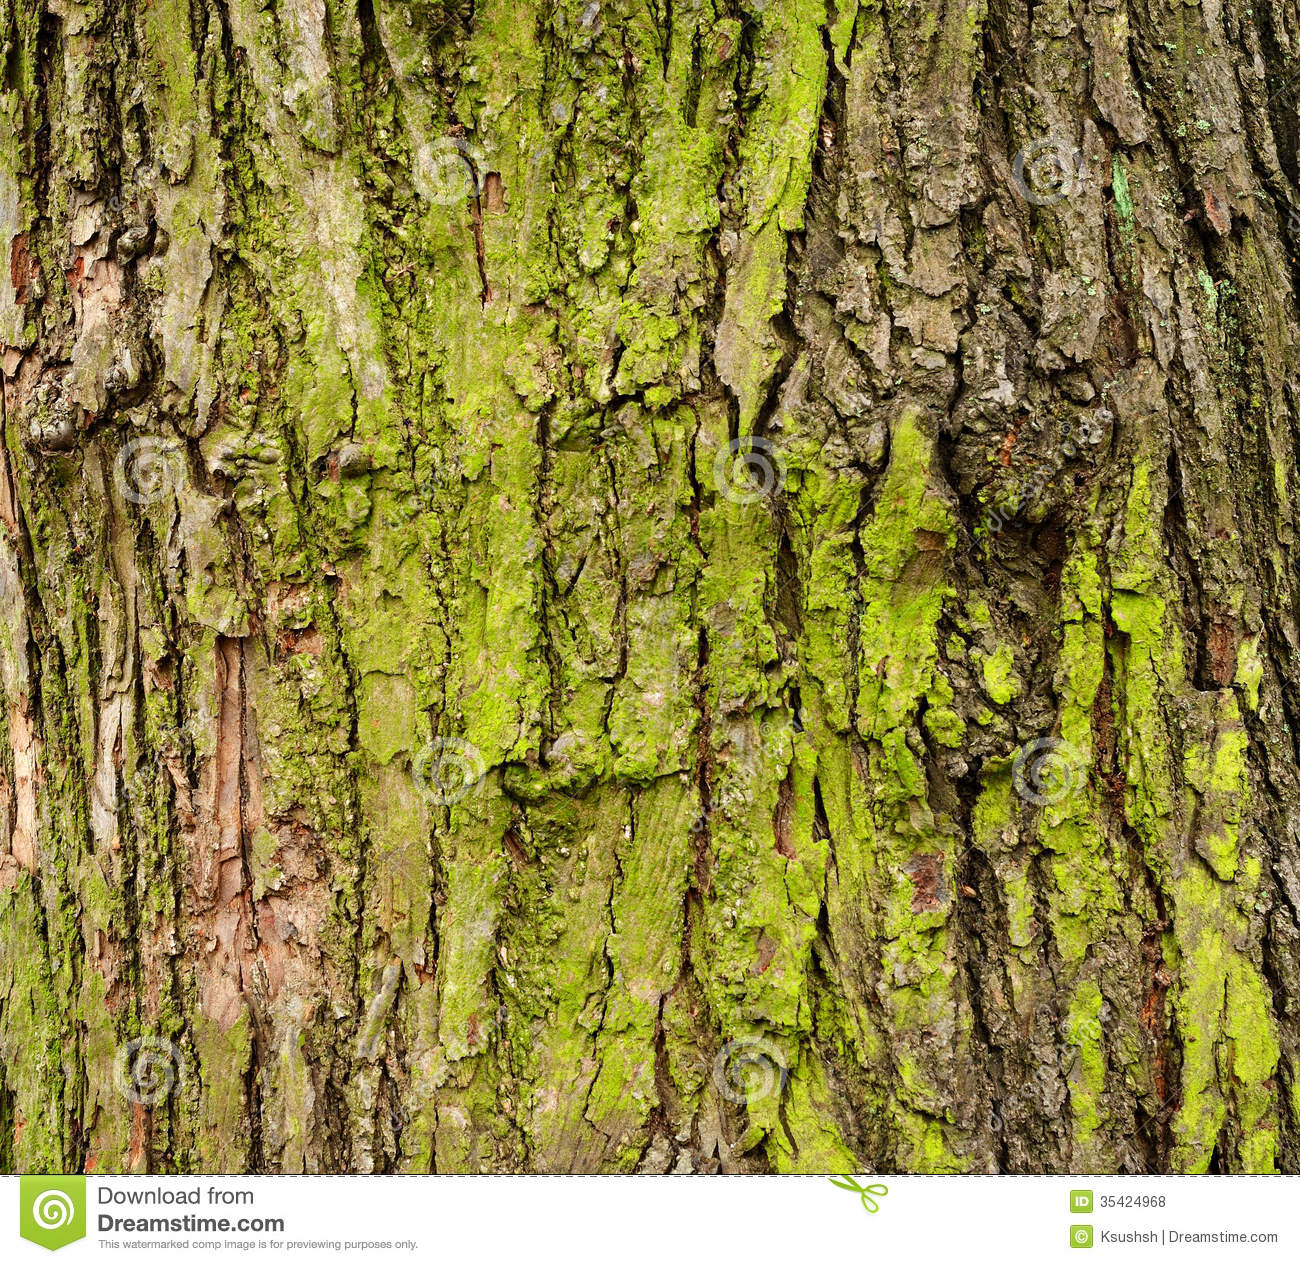 Mossy Green 201 Corce D Arbre Moussue Photos Libres De Droits Image